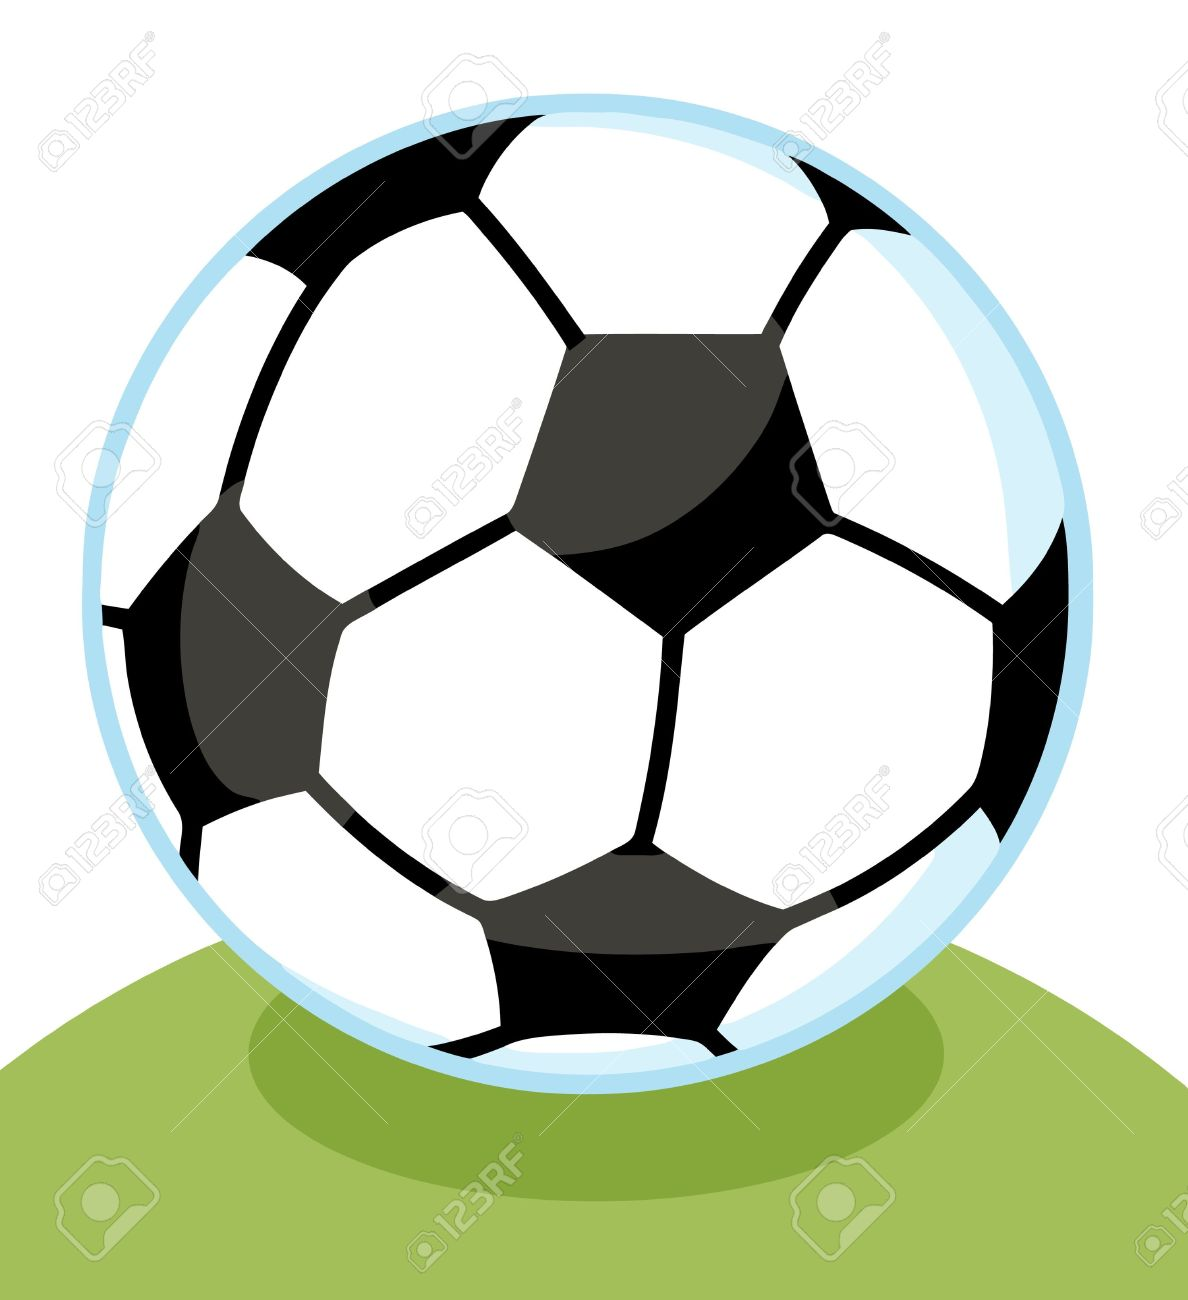 1188x1300 Soccer Ball In Grass Clipart